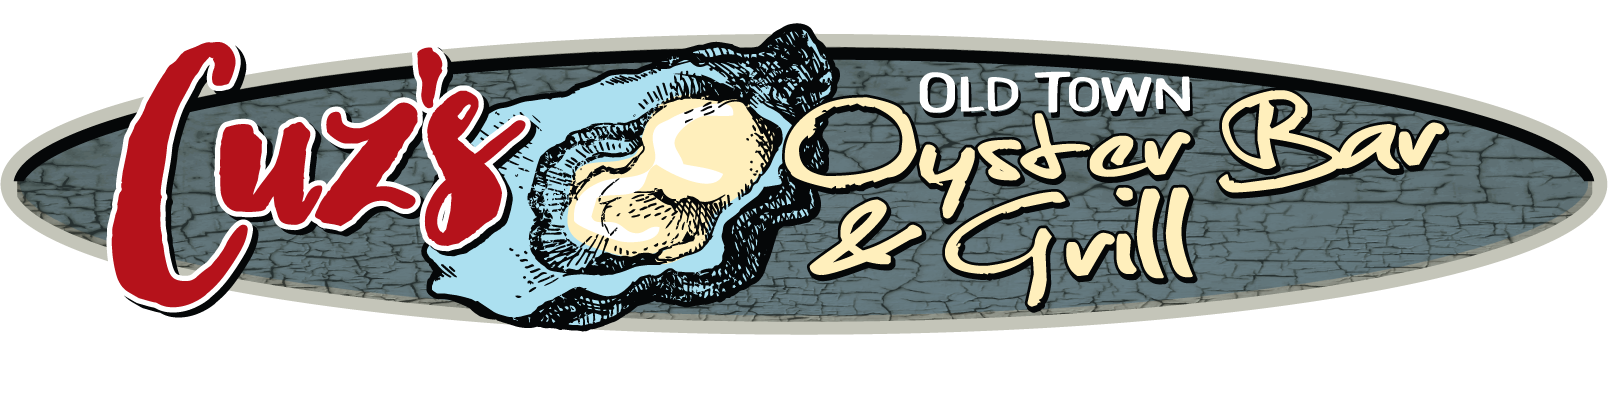 Cuz's Old Town Oyster Bar & Grill